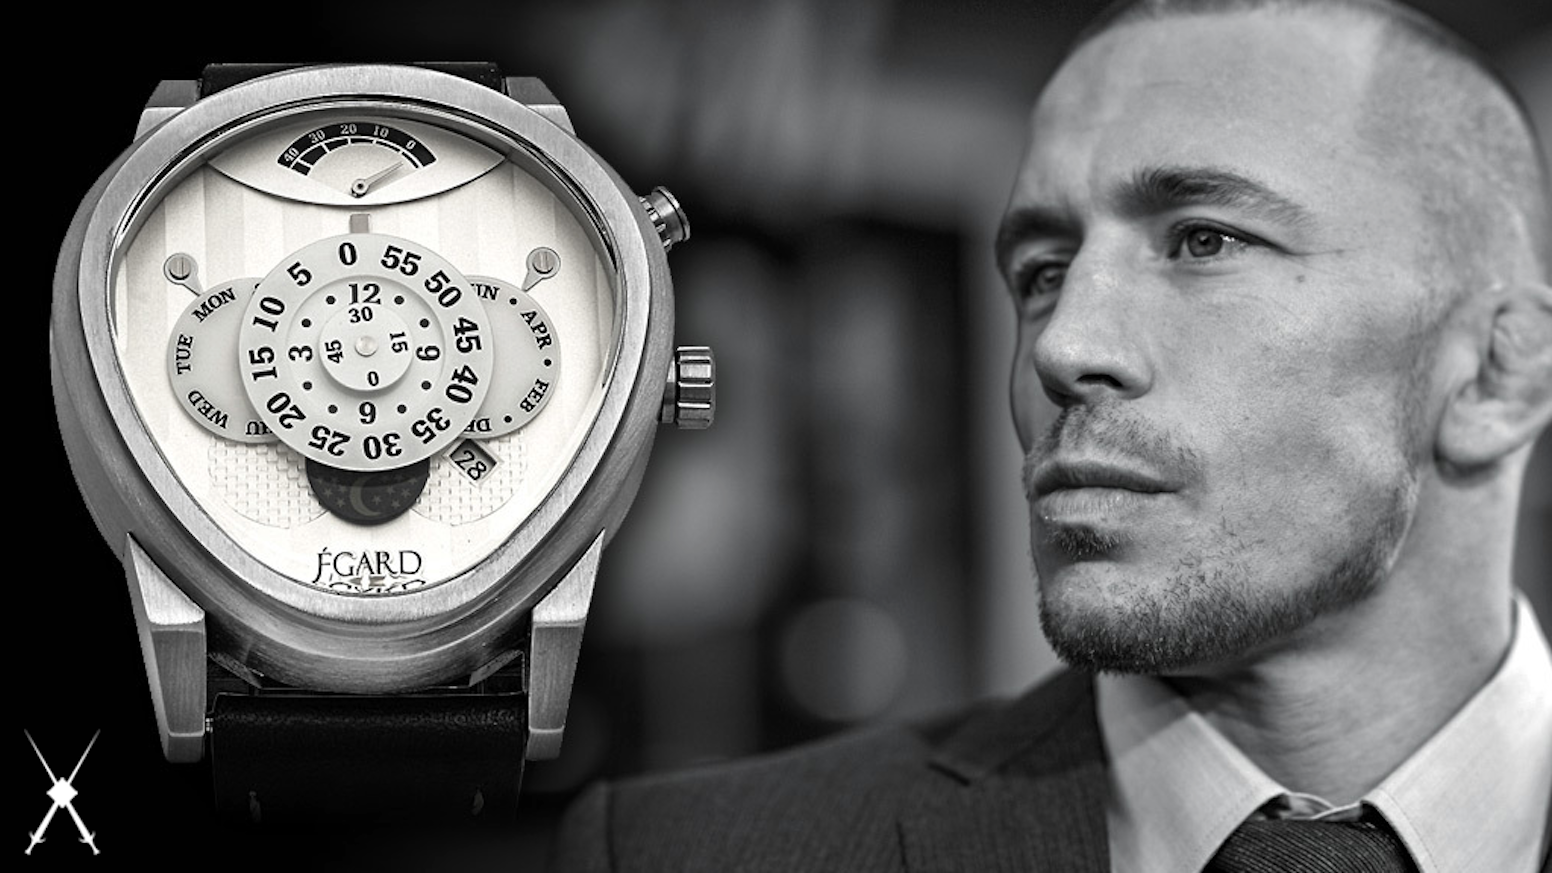 A partnership between MMA legend Georges St. Pierre and Egard Watch Co. to create a limited edition timepiece worthy of his legacy.